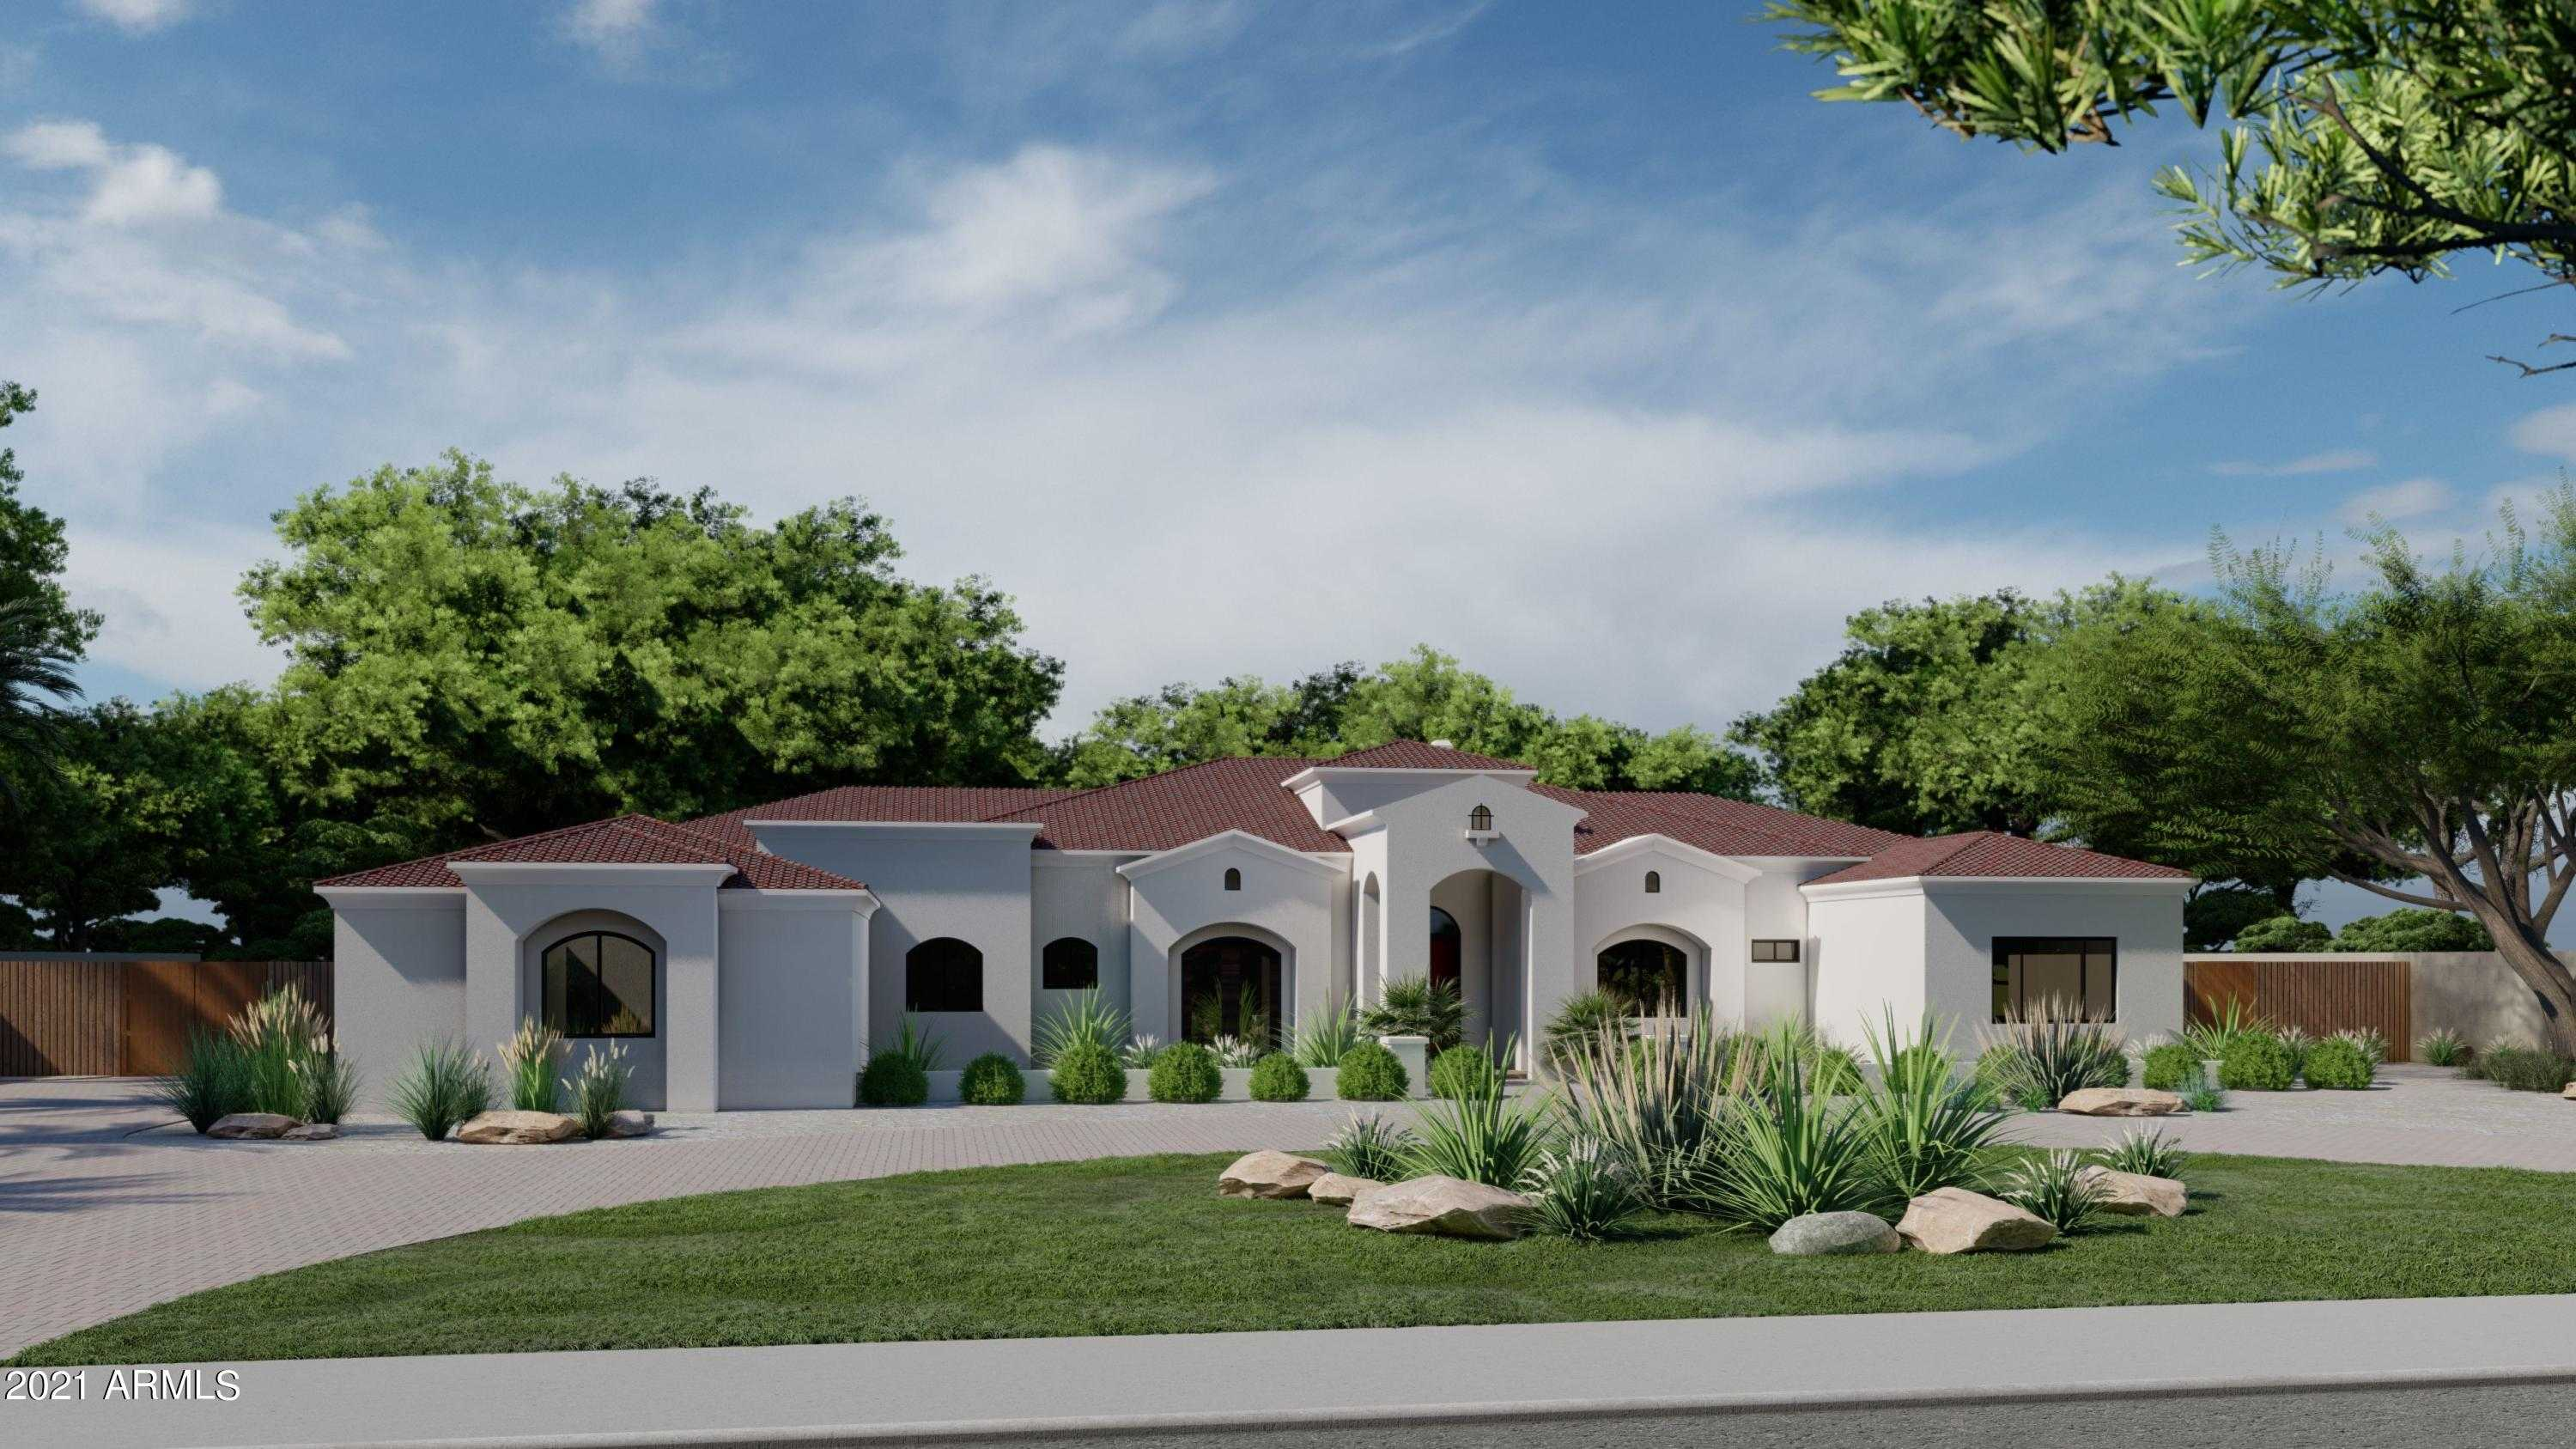 $3,250,000 - 5Br/6Ba - Home for Sale in Sunburst Farms East, Paradise Valley